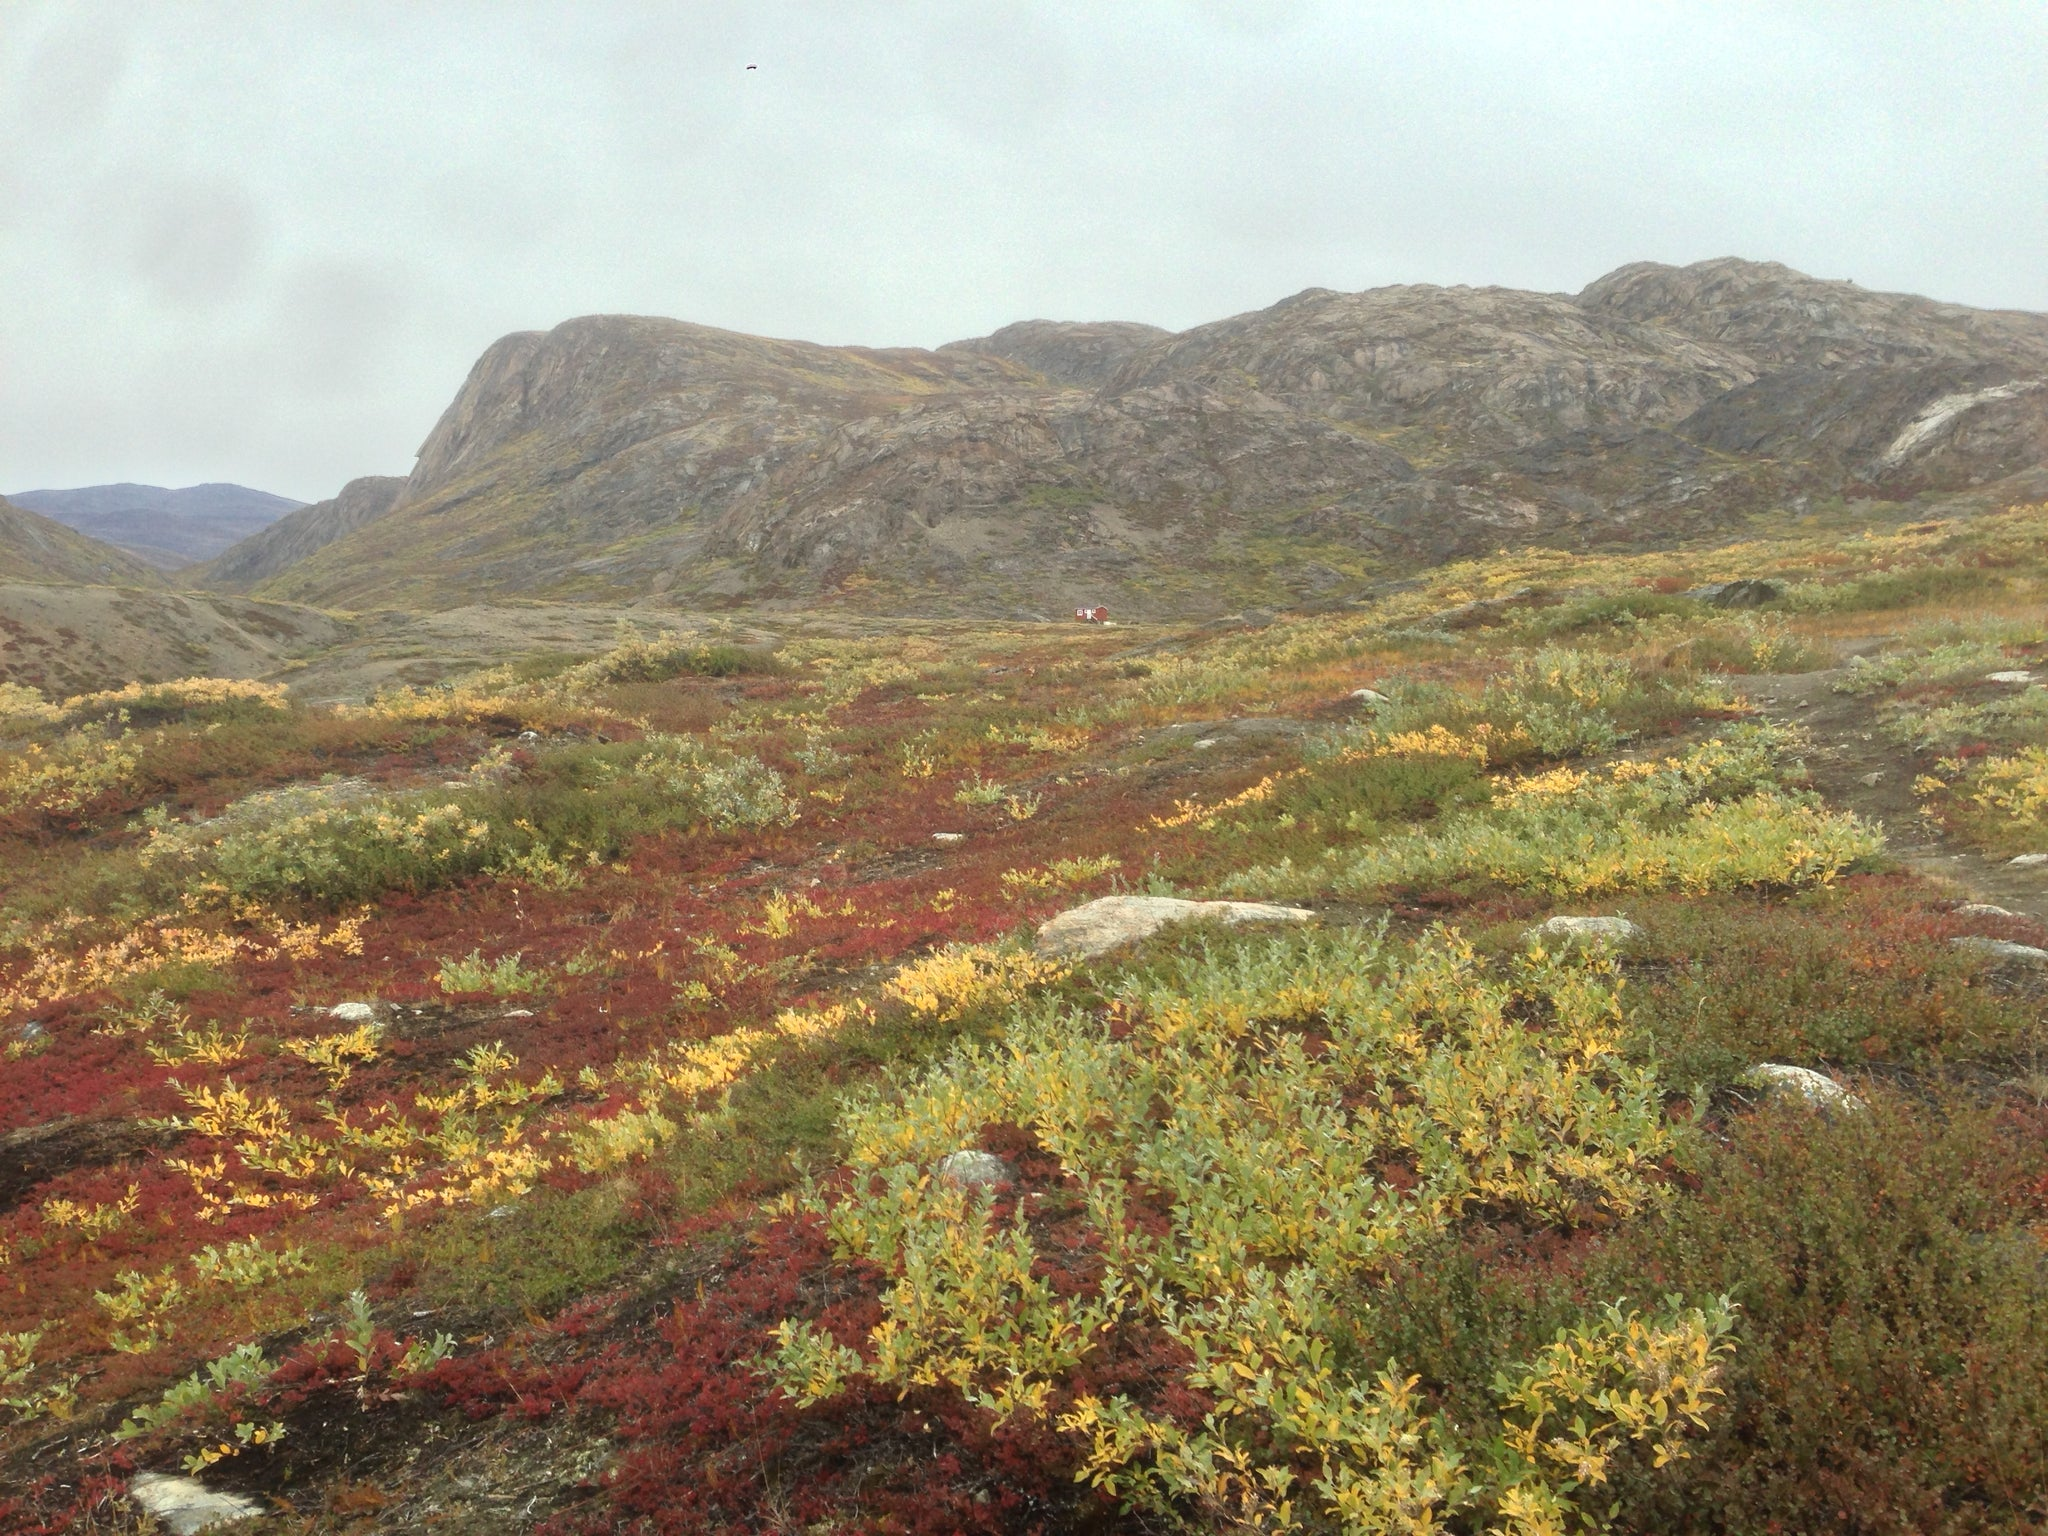 Approaching Eqalugaarniarfik Hut (At center, up against the mountain), Greenland (Arctic Circle Trail)